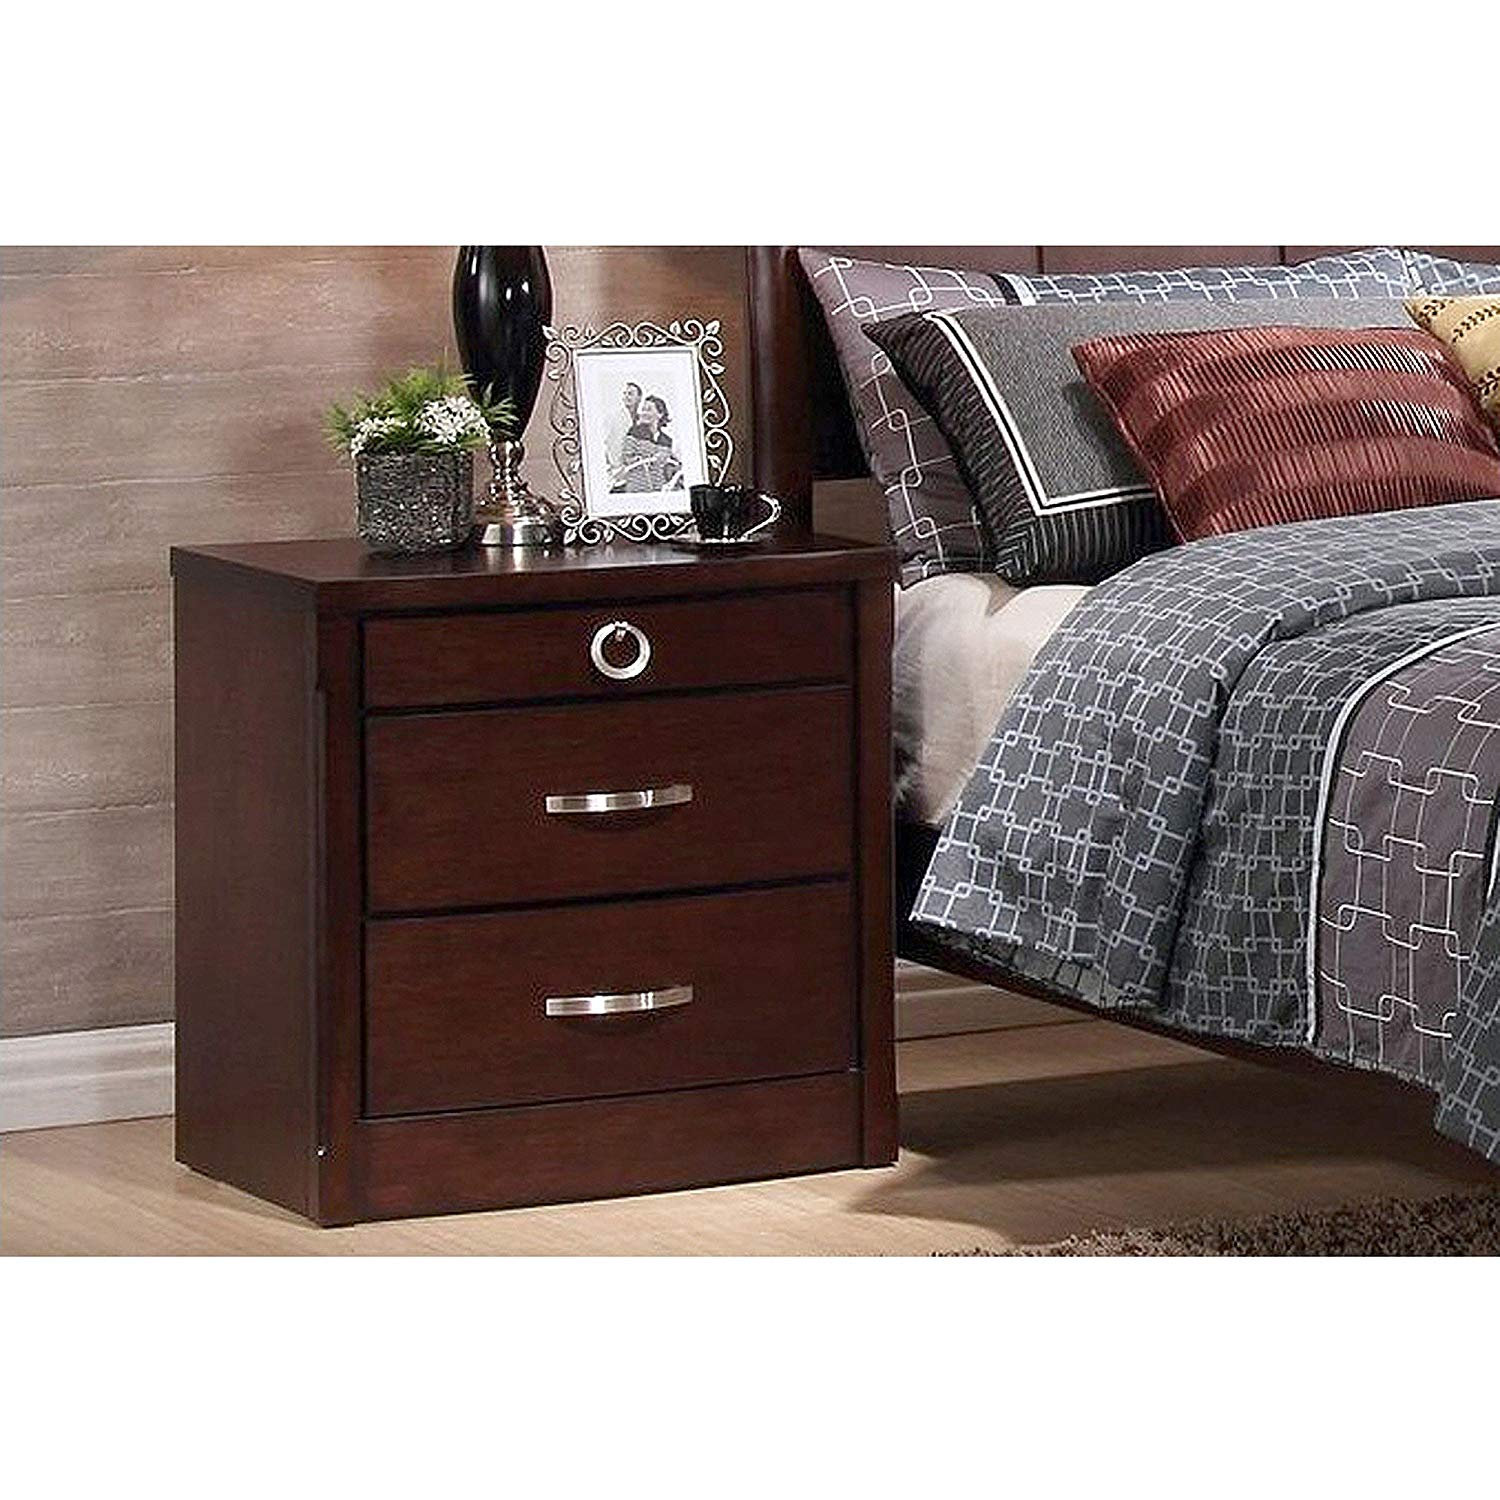 Argonne 3-Drawer Wooden Modern Nightstand, Dark Brown, Touch of Elegance, Solid Wood, Antique-Effect Dark Espresso Brown Stain, Silver-Tone Drawer Pulls, Wood Paneling Effect + Expert Guide